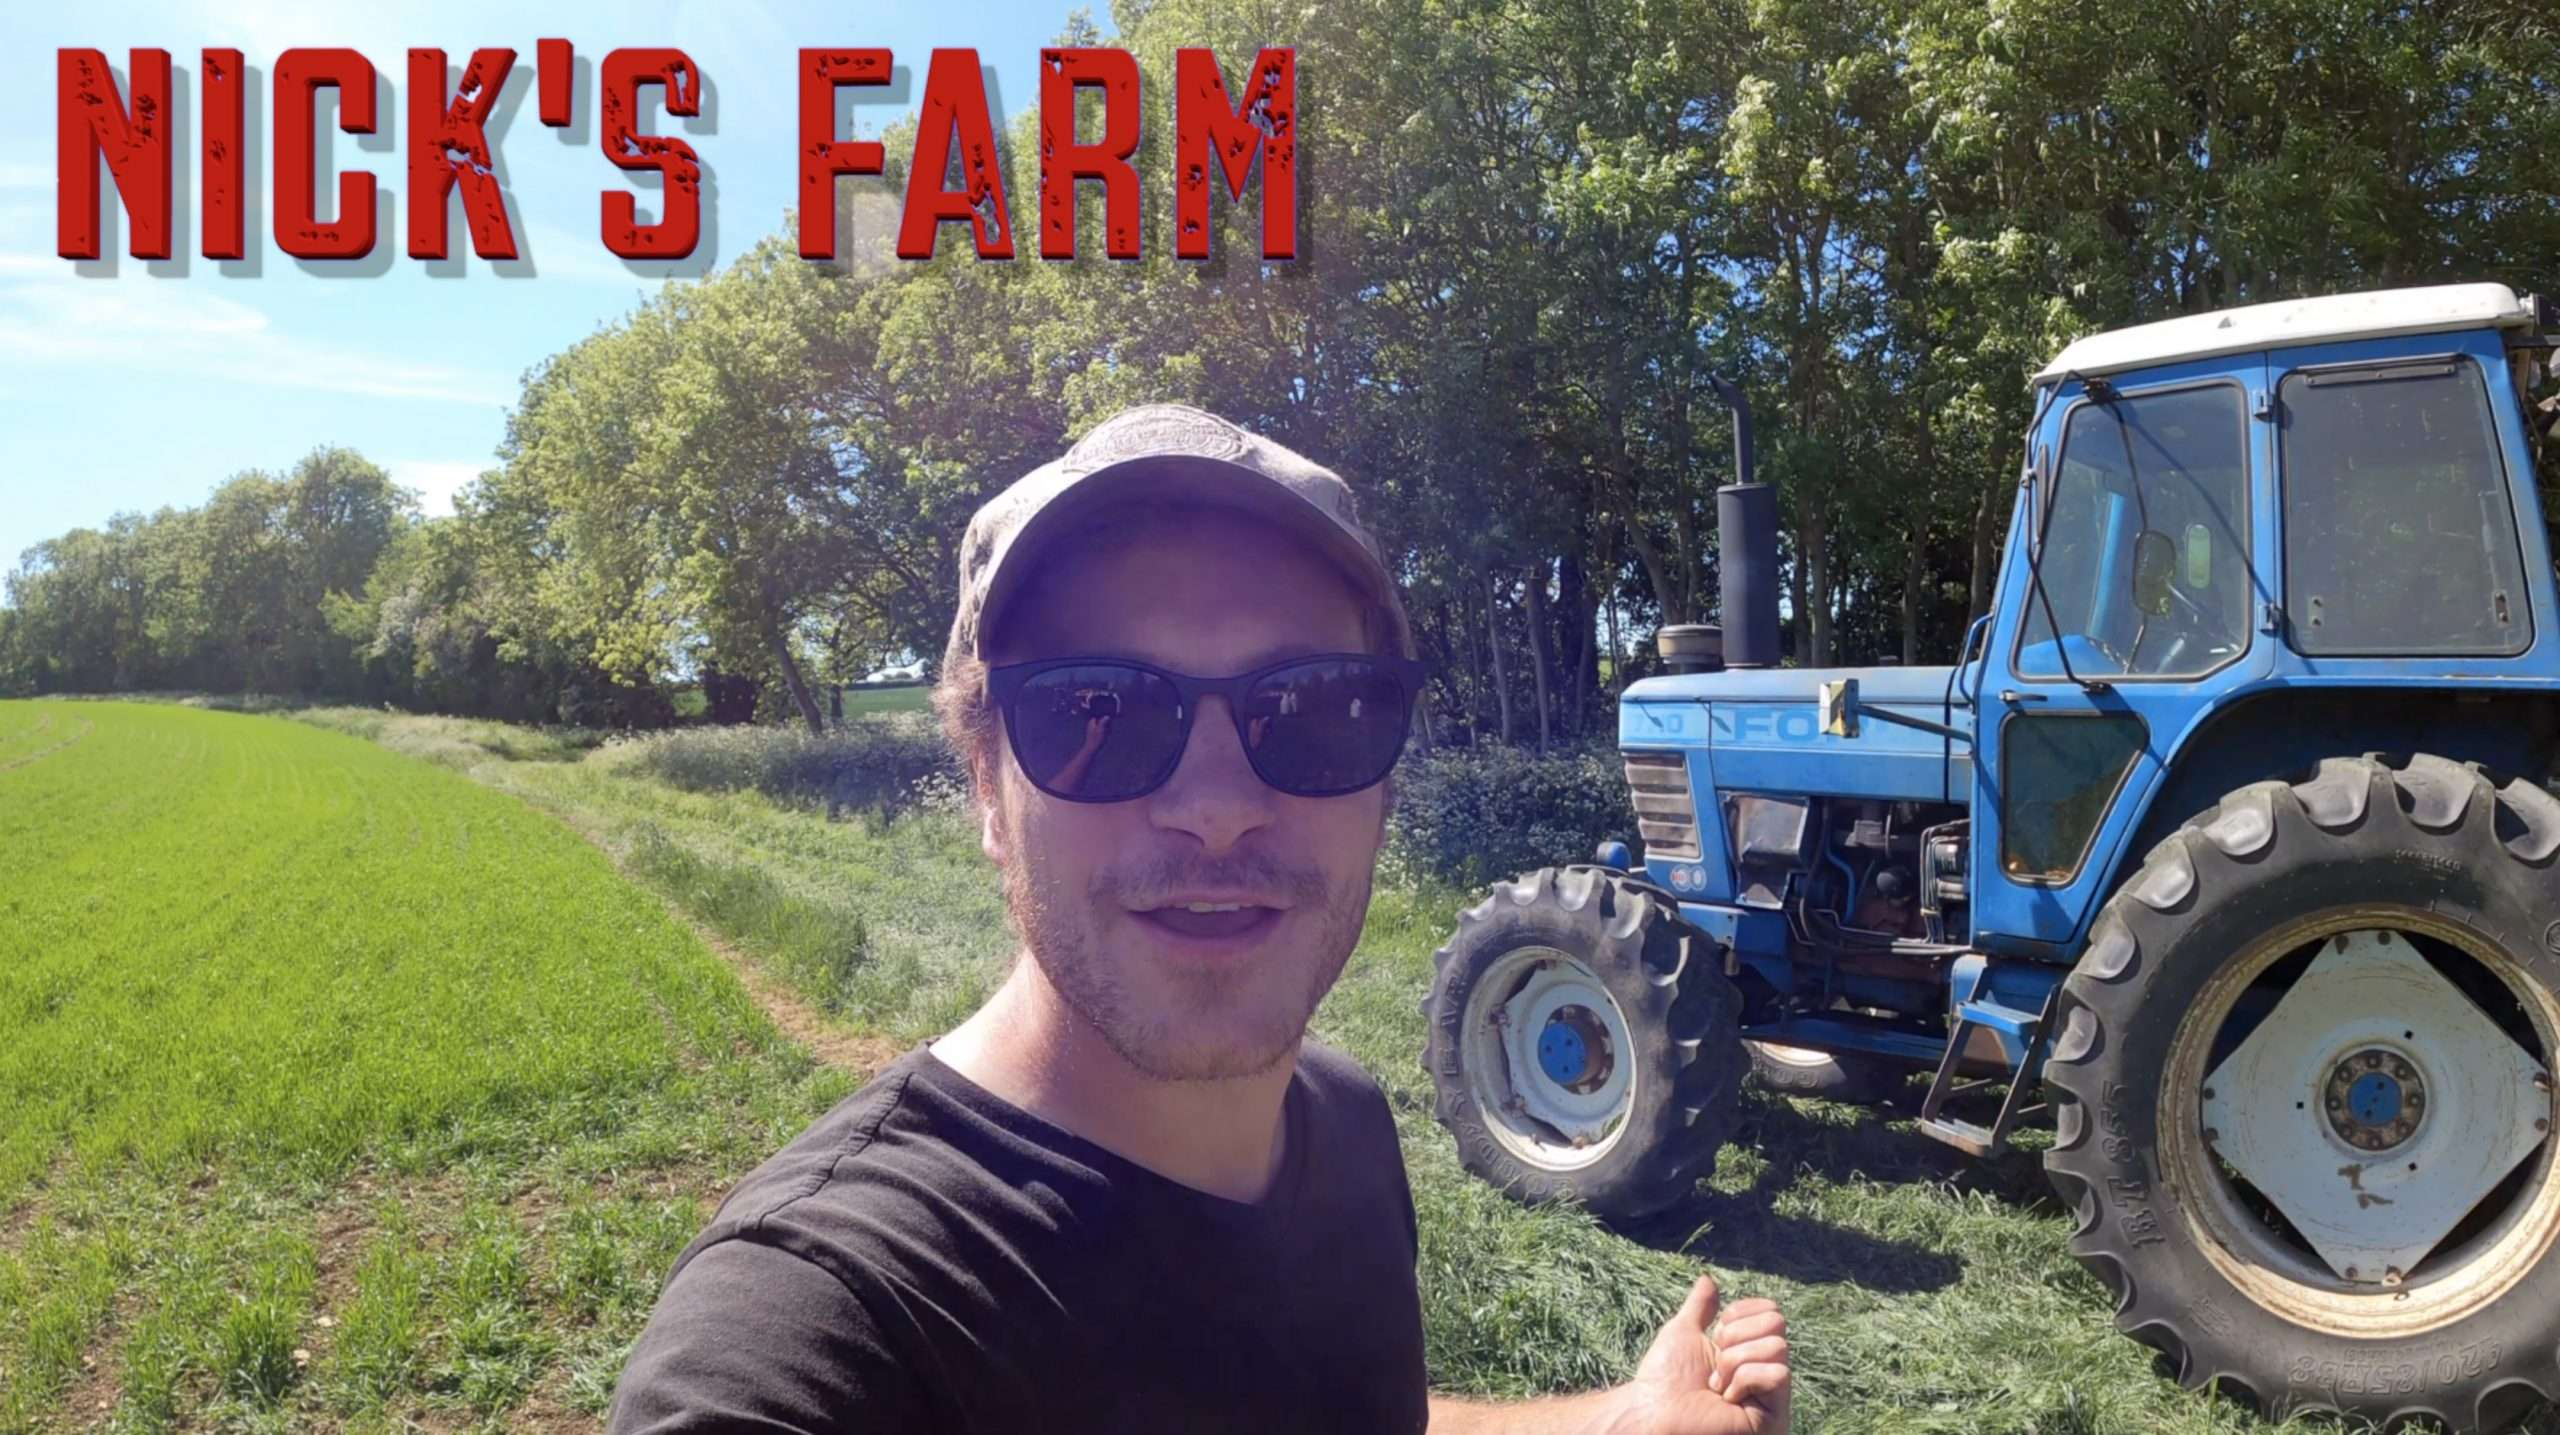 Farmer Nick with his old tractor